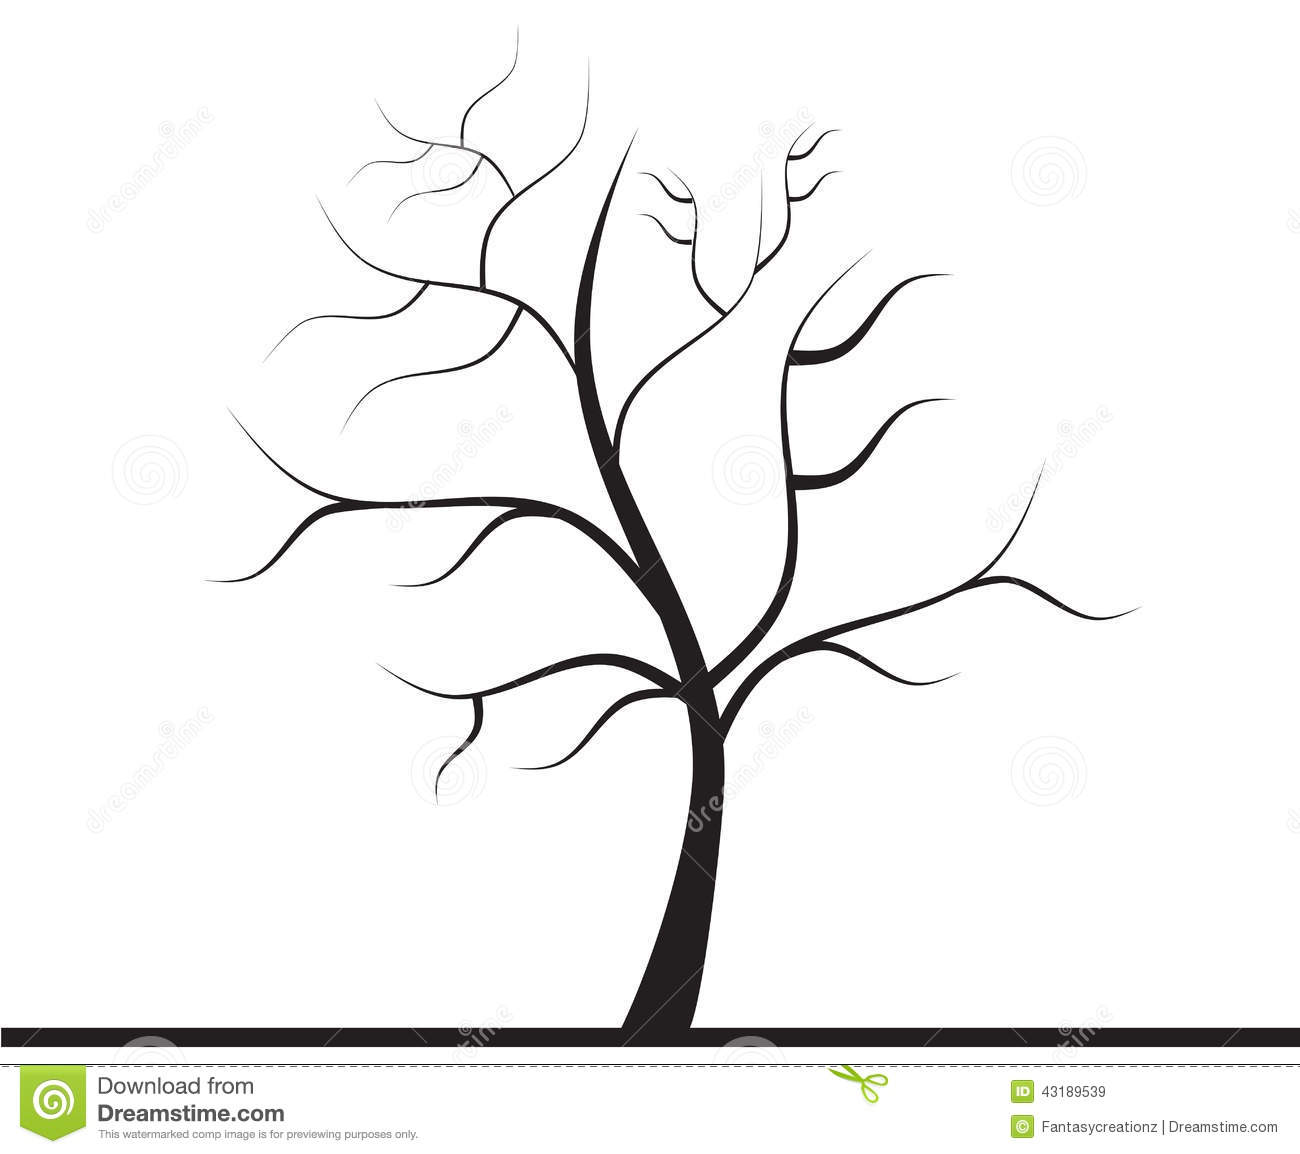 sketched tree clipart - Clipground